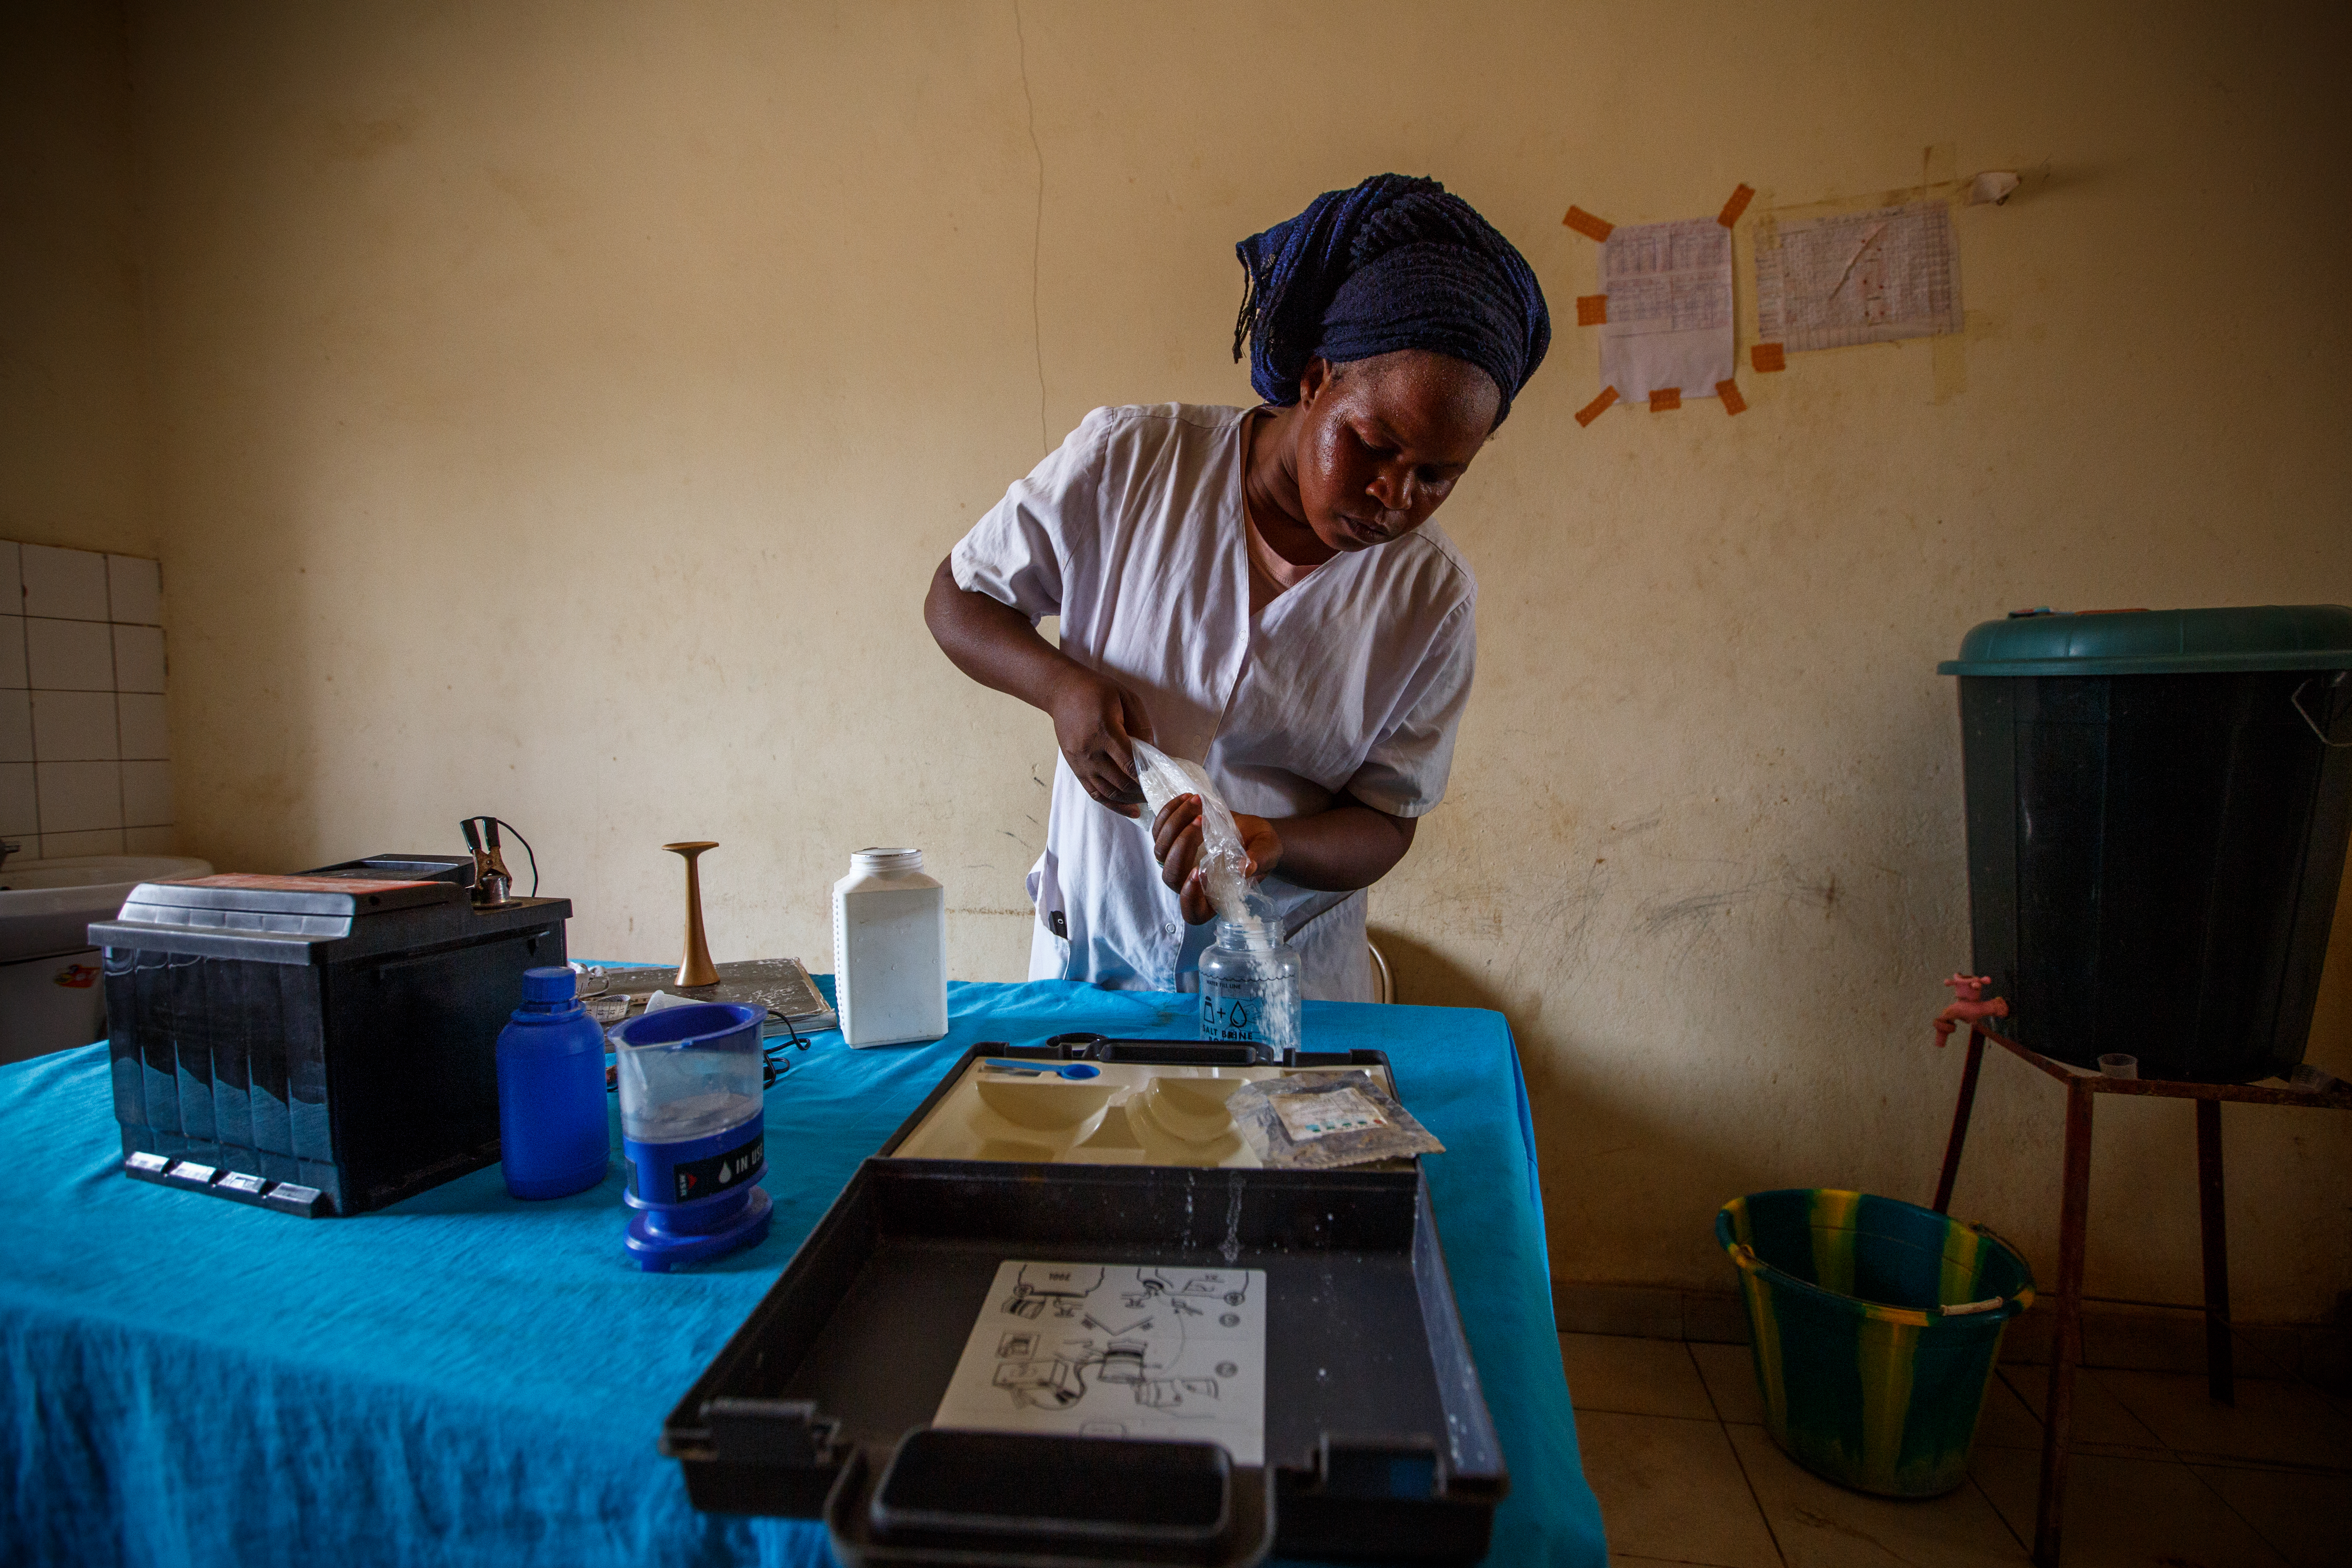 MSR Device Helps Mali Village Create its Own Safe Water Supply - The